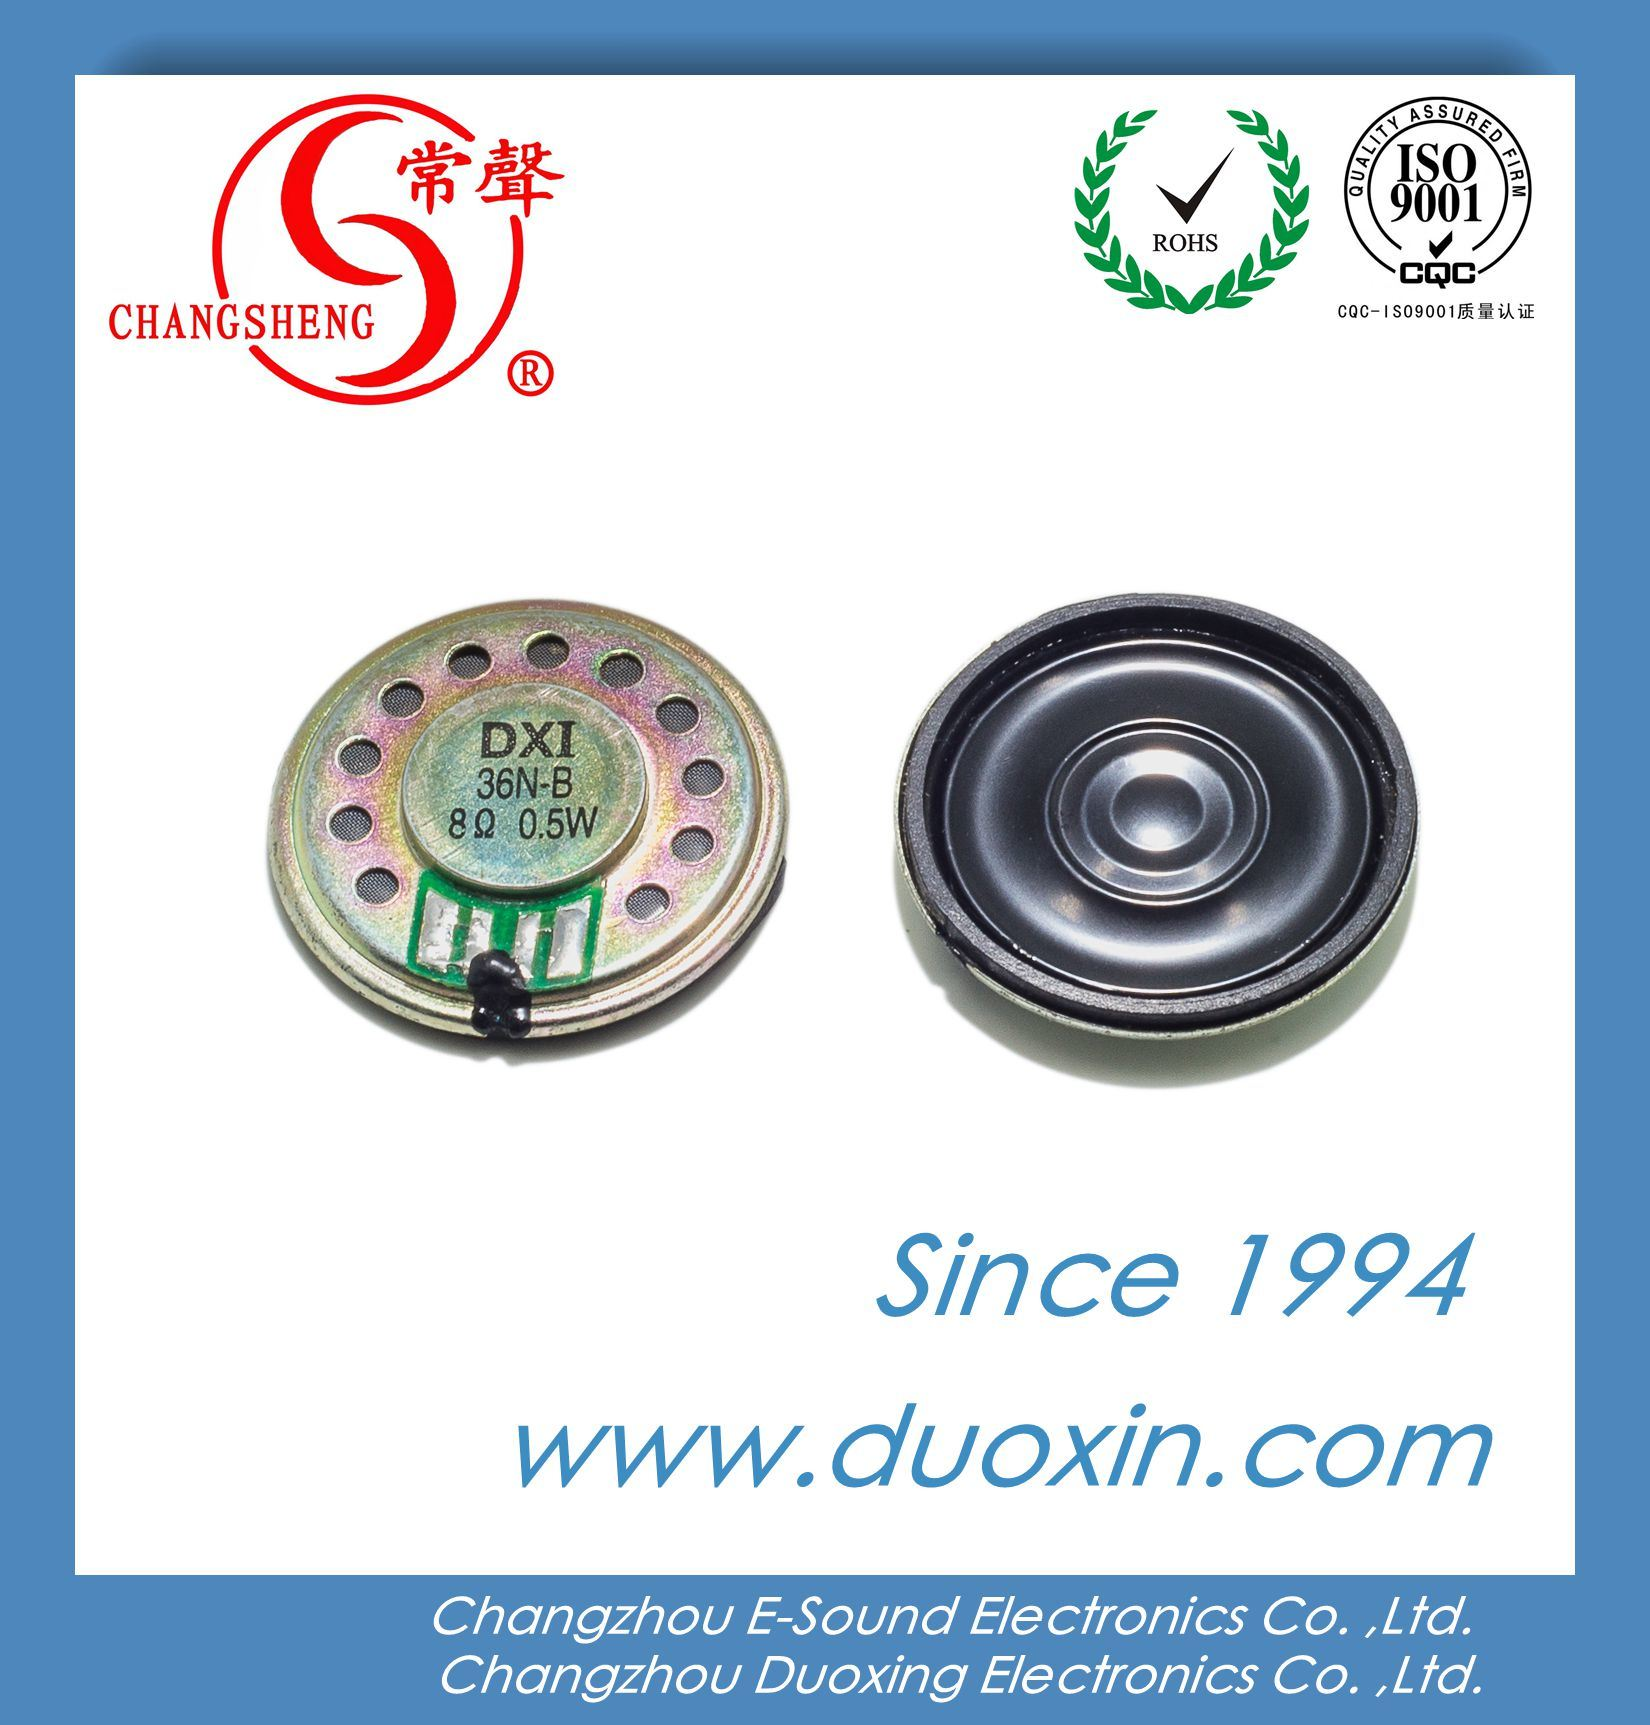 36mm 8ohm 0.5W Waterproof Mylar Mini Speaker Dxi36n-B with RoHS